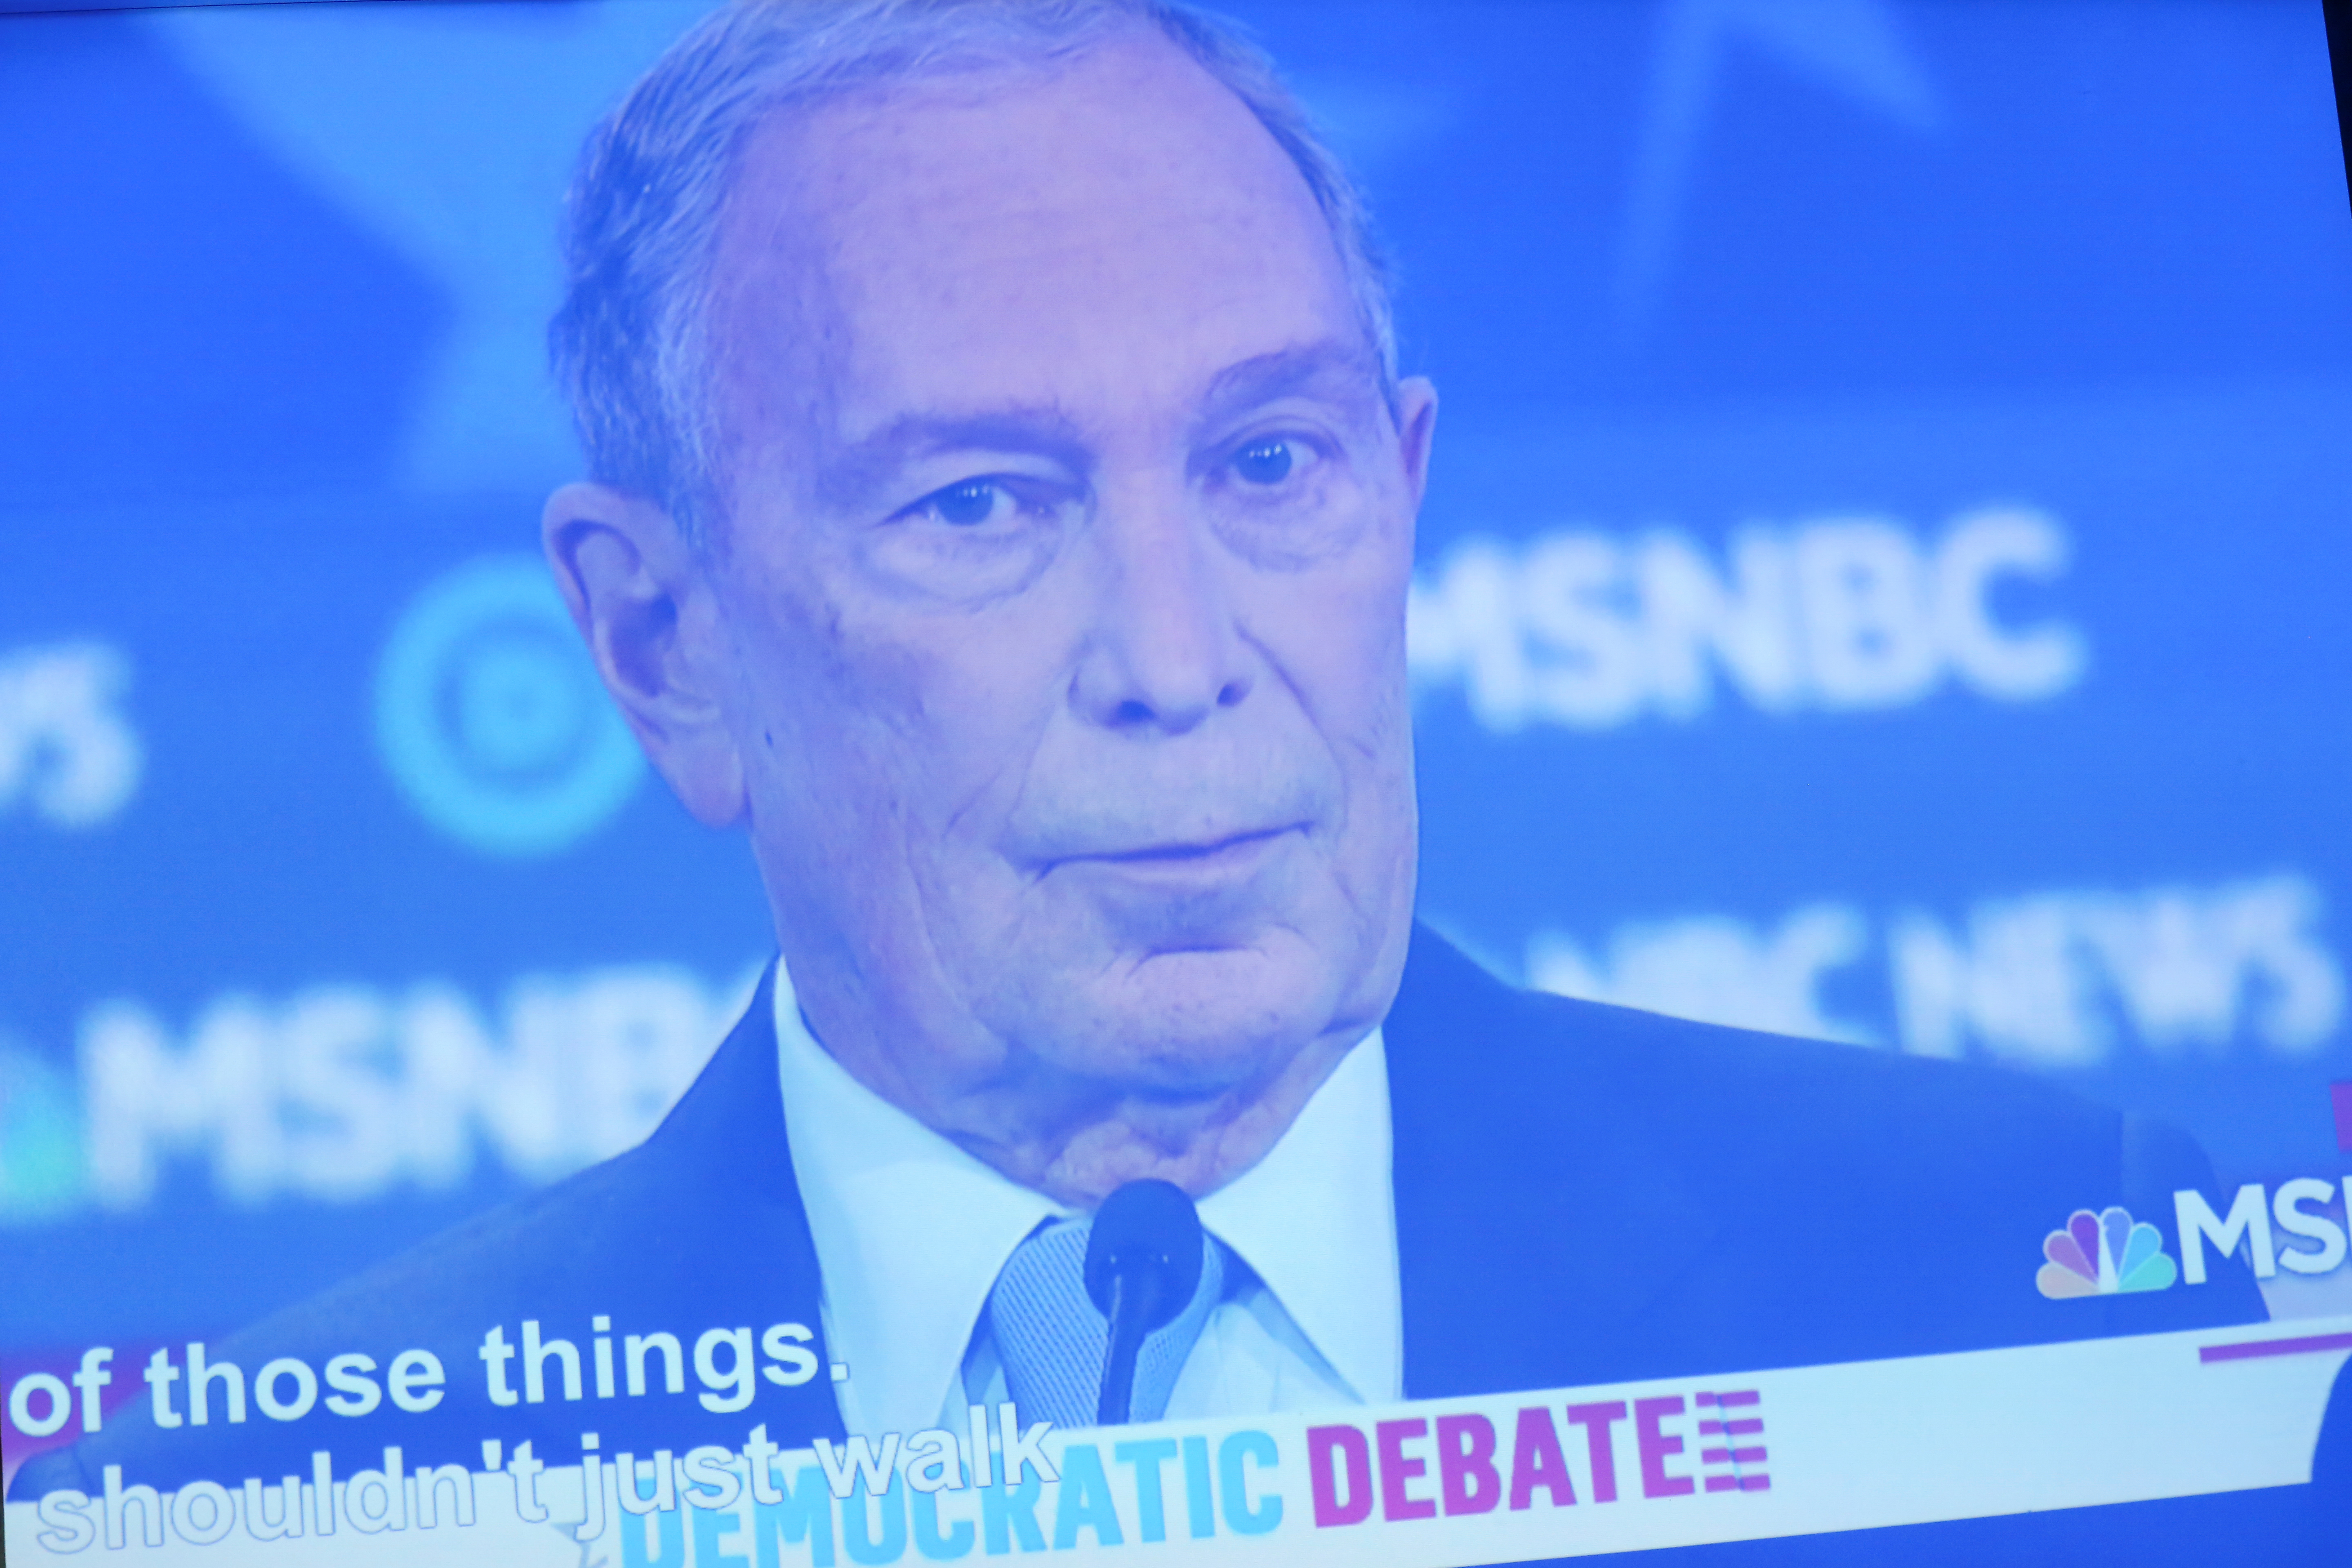 A projection of Democratic presidential candidate Michael Bloomberg as he debates is shown at his campaign office in the Brooklyn borough of New York City, New York, U.S., February 19, 2020. Picture taken February 19, 2020. REUTERS/Caitlin Ochs